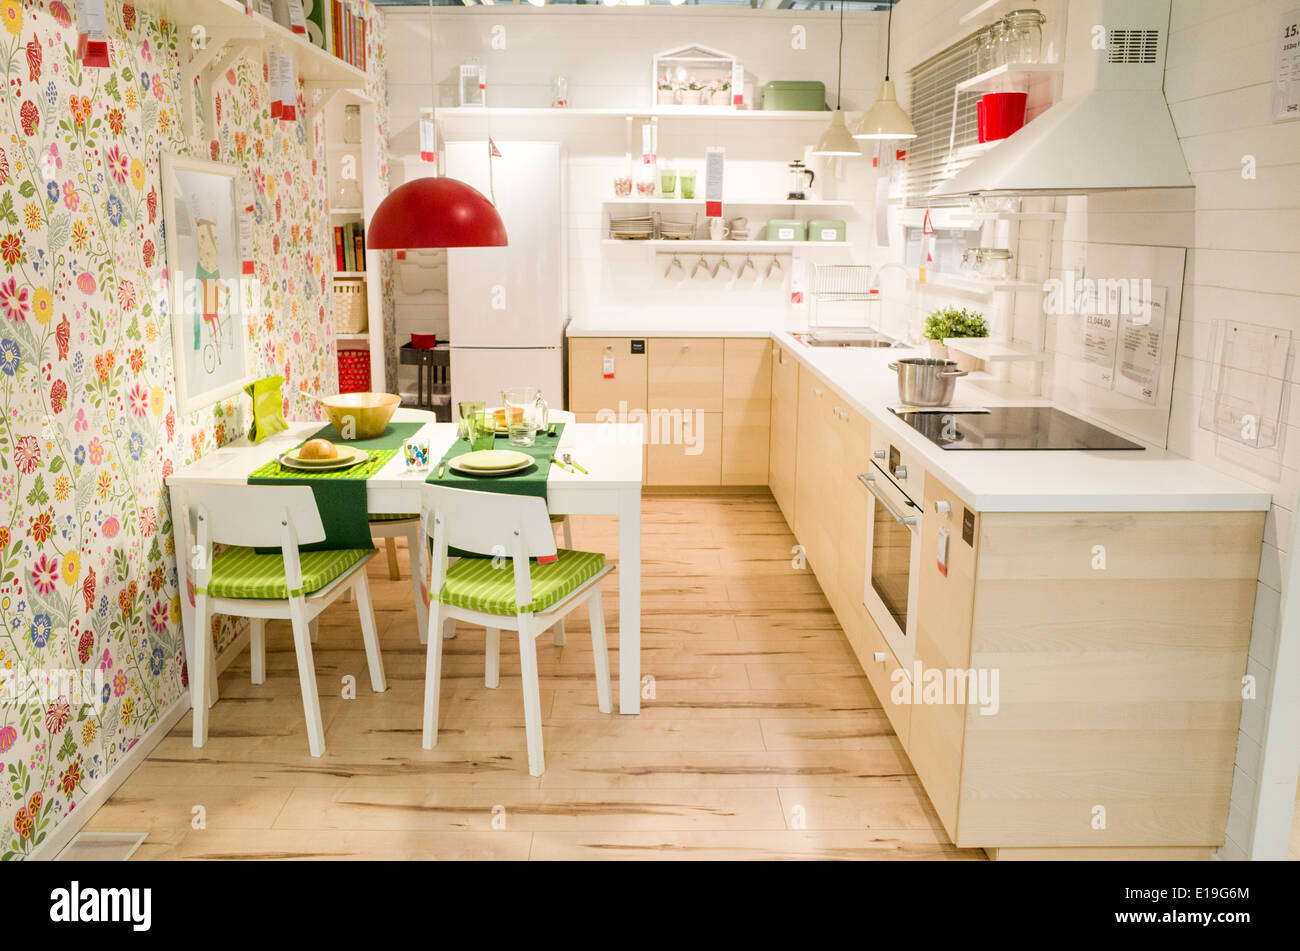 Ikea Kitchen Stockfotos & Ikea Kitchen Bilder - Alamy